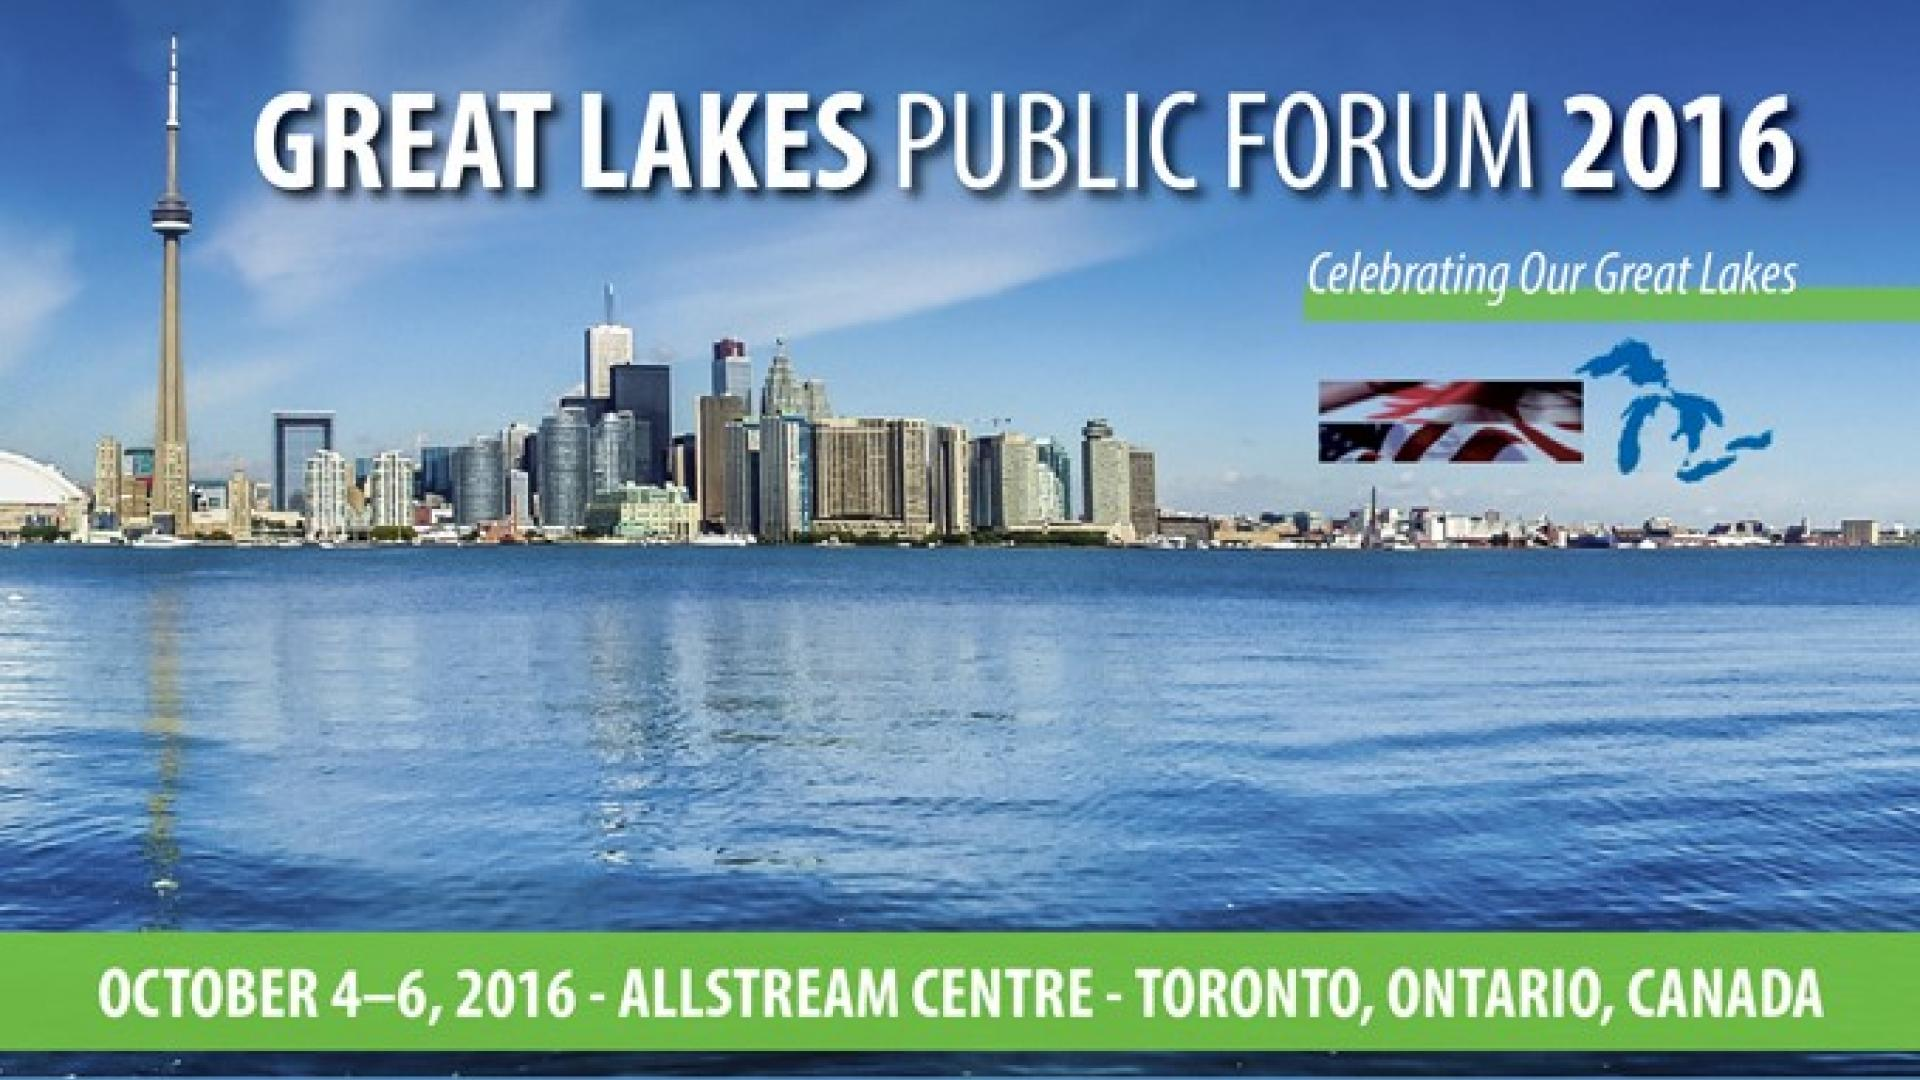 Great Lakes Public Forum ad